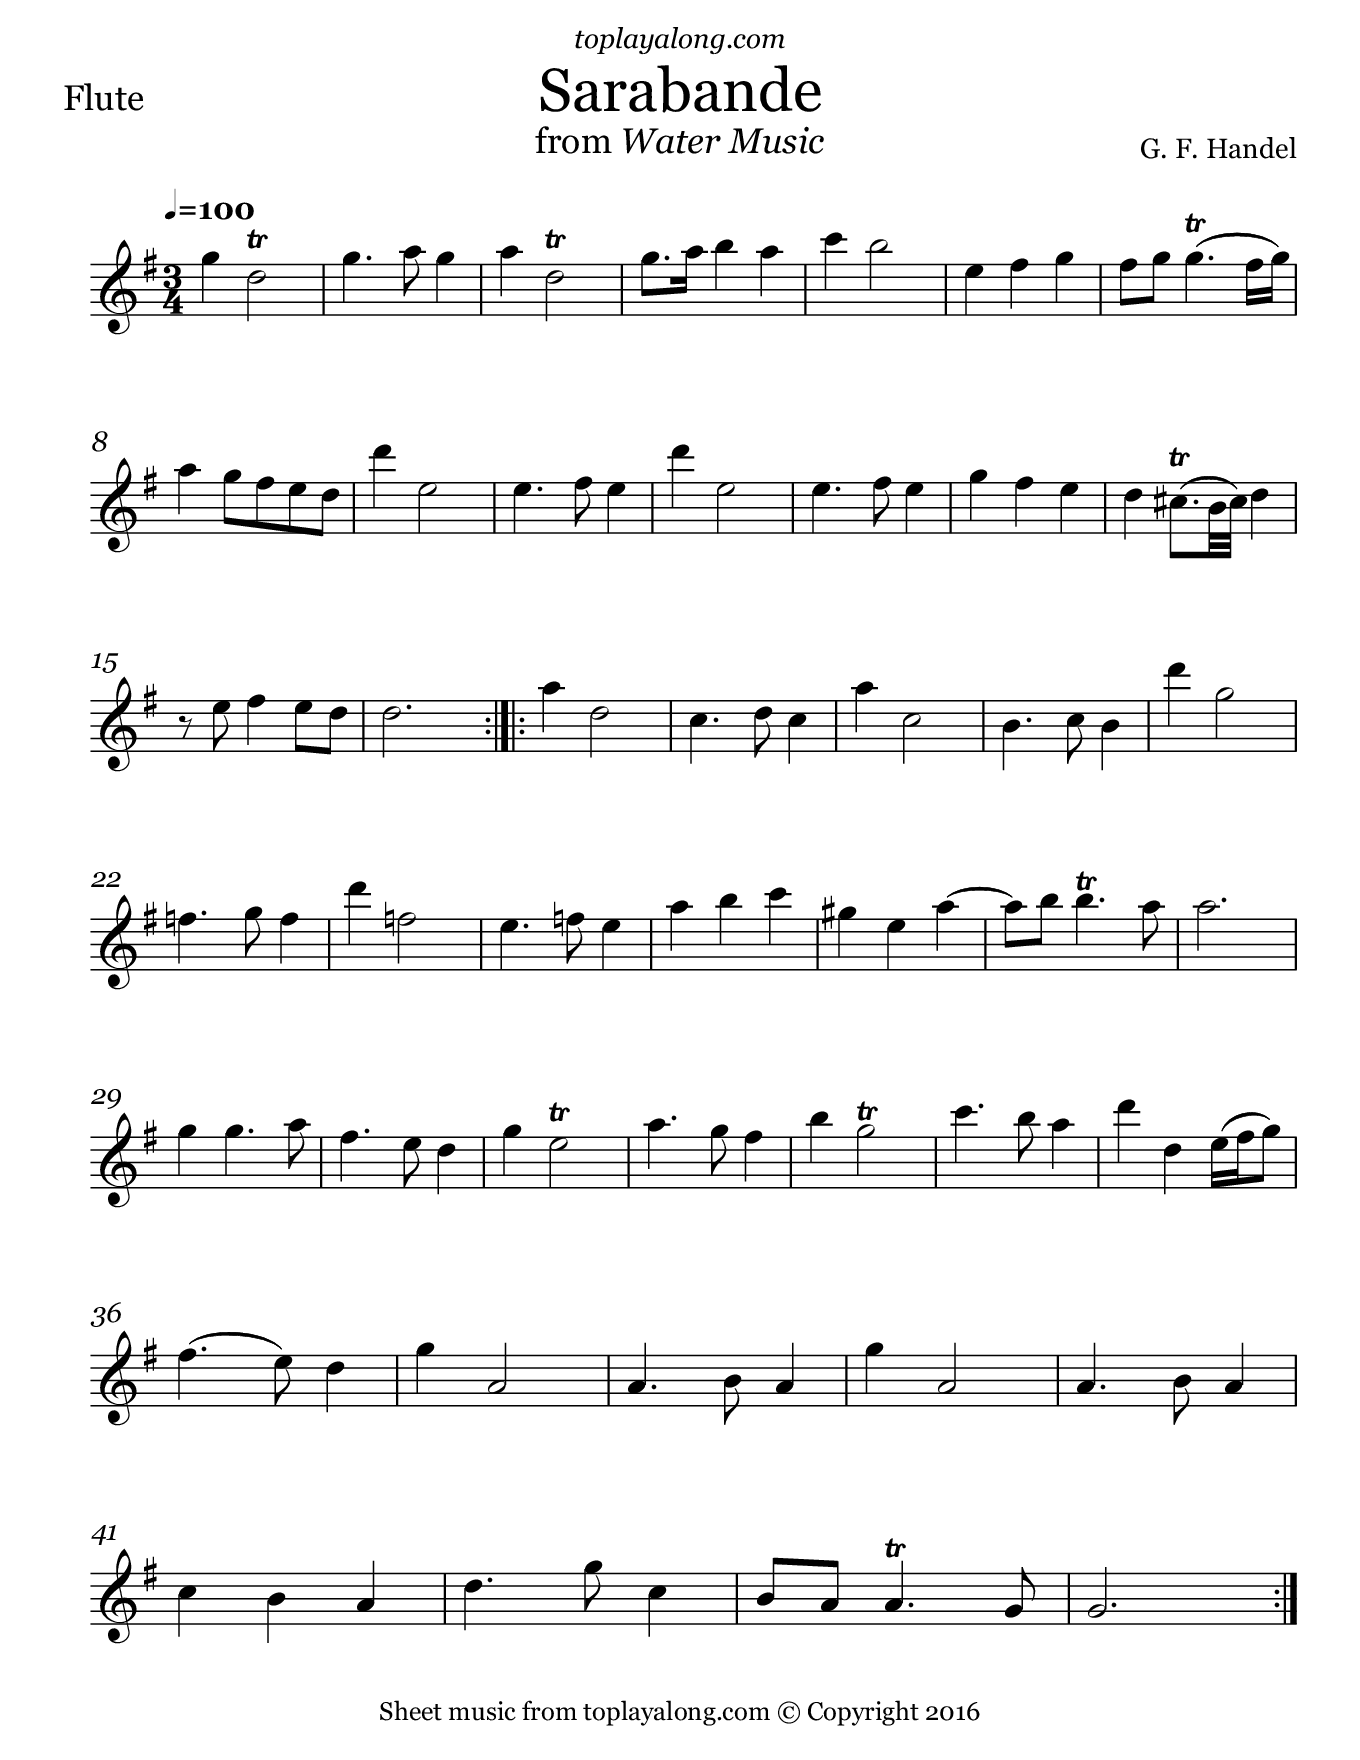 Sarabande from Water Music by Handel. Sheet music for Flute, page 1.